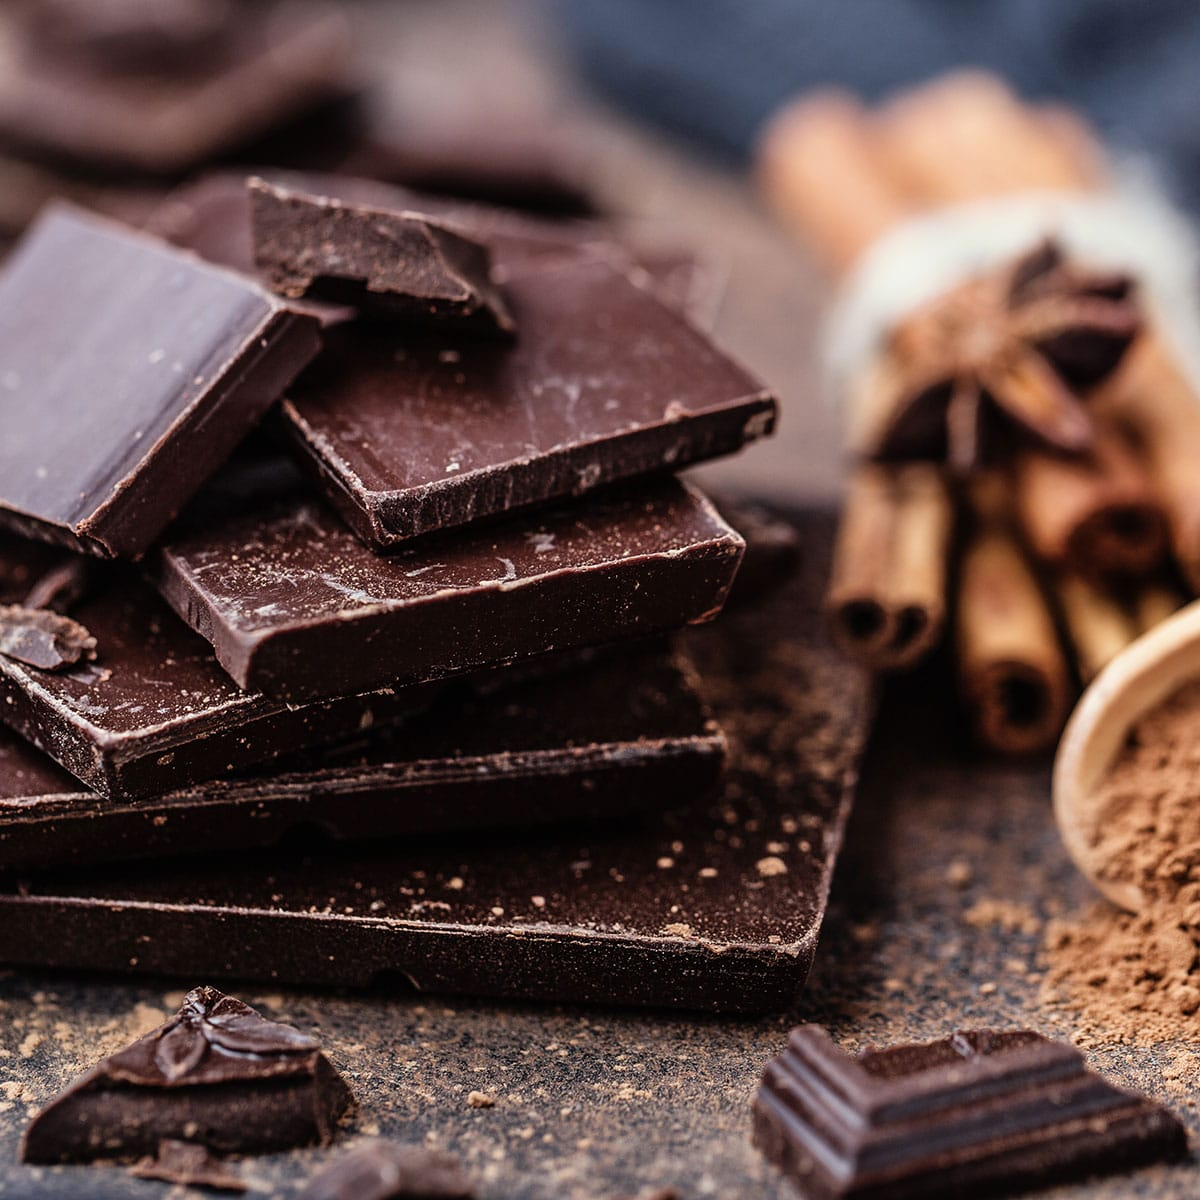 National Food Day Calendar 2022.National Dark Chocolate Day February 1 2022 National Today